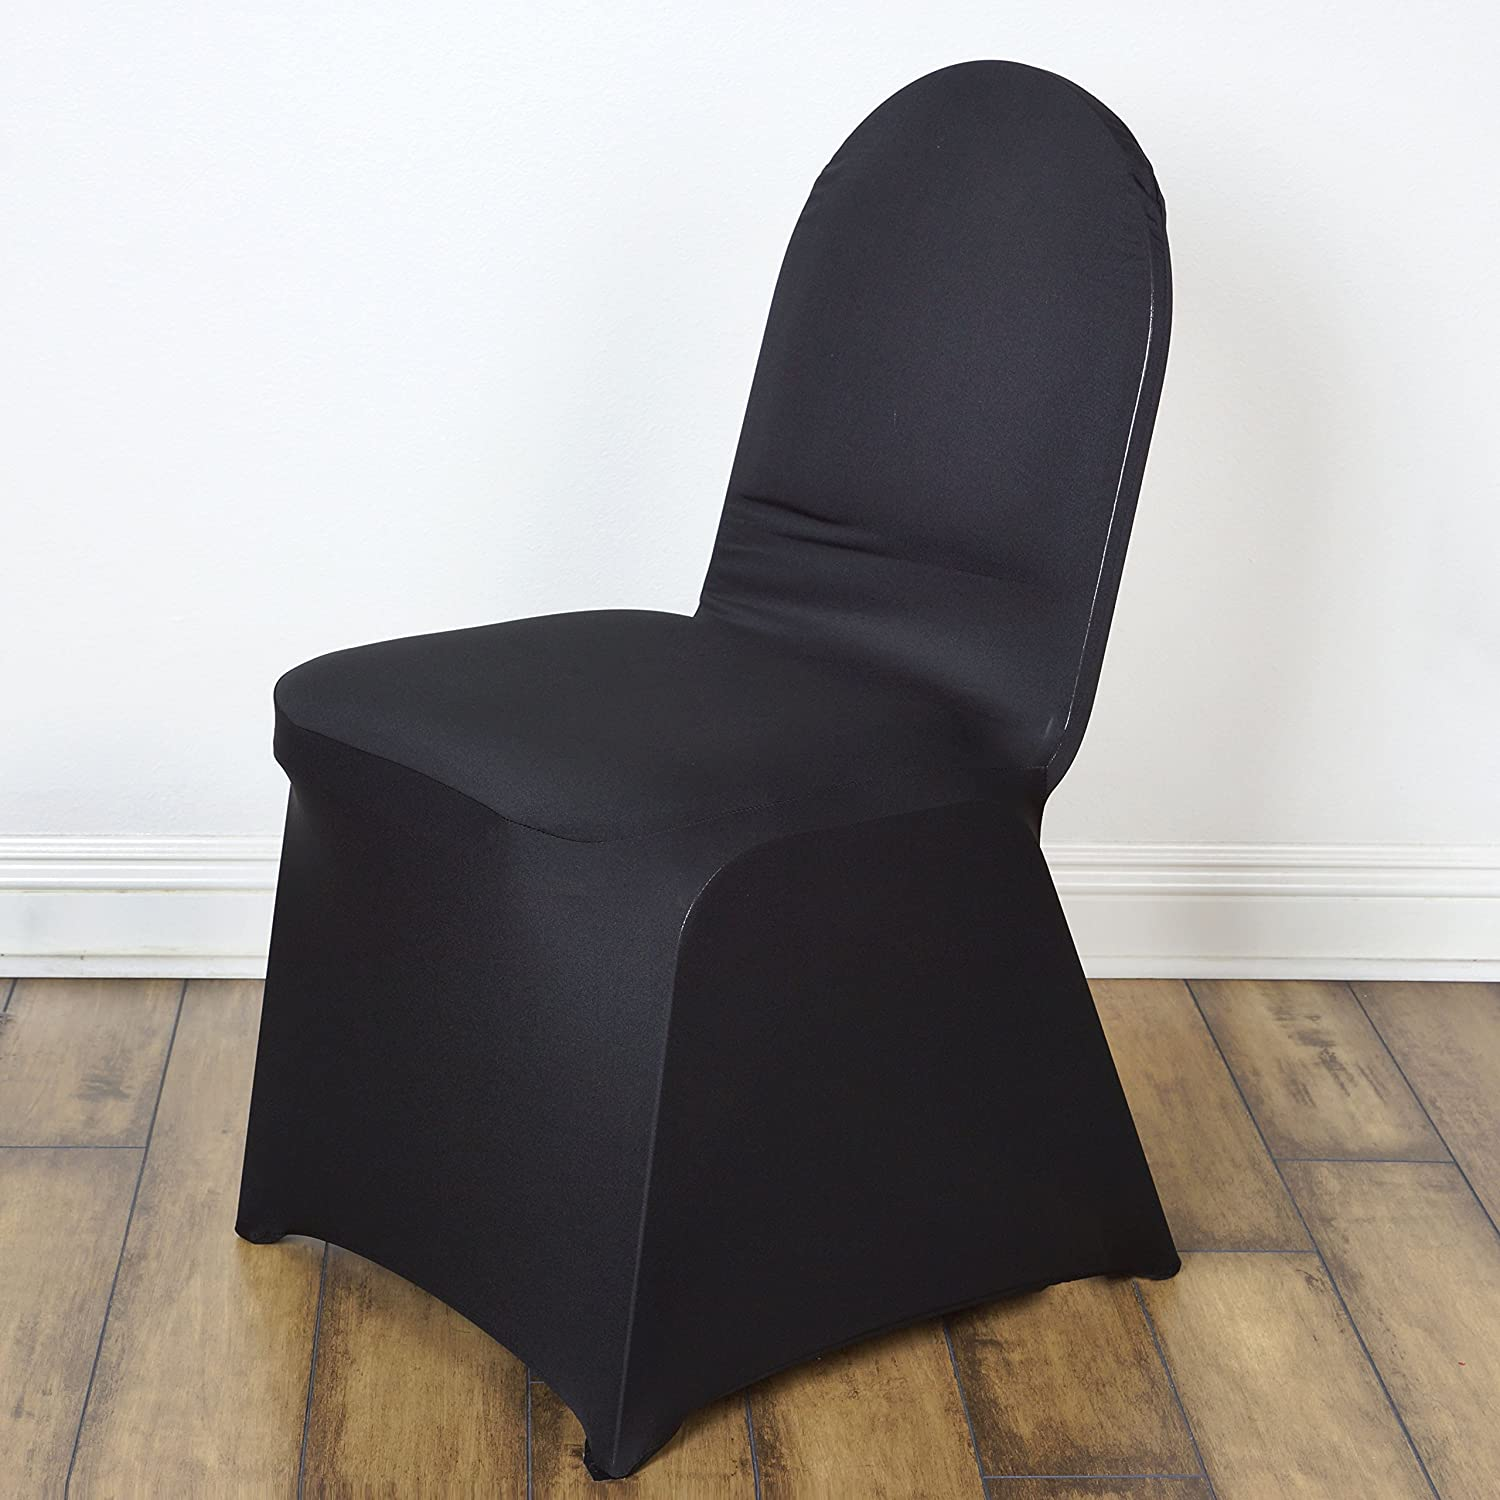 Amazon 10 pcs Banquet Spandex Stretchable Chair Covers